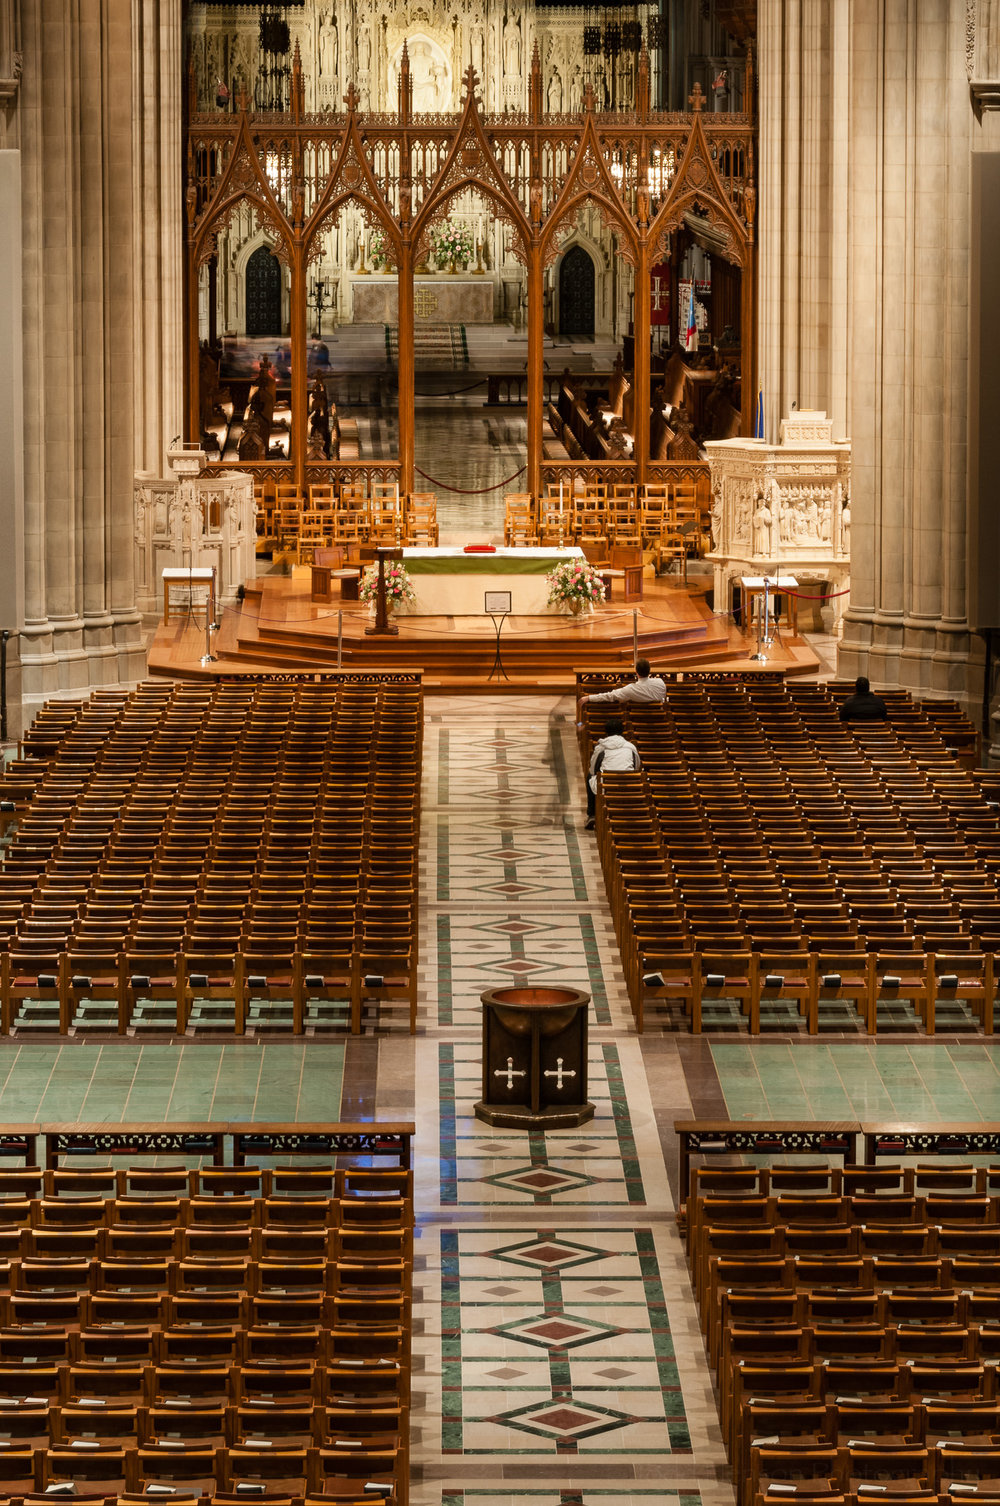 Interior view of Washington National Cathedral from an upstairs balcony.